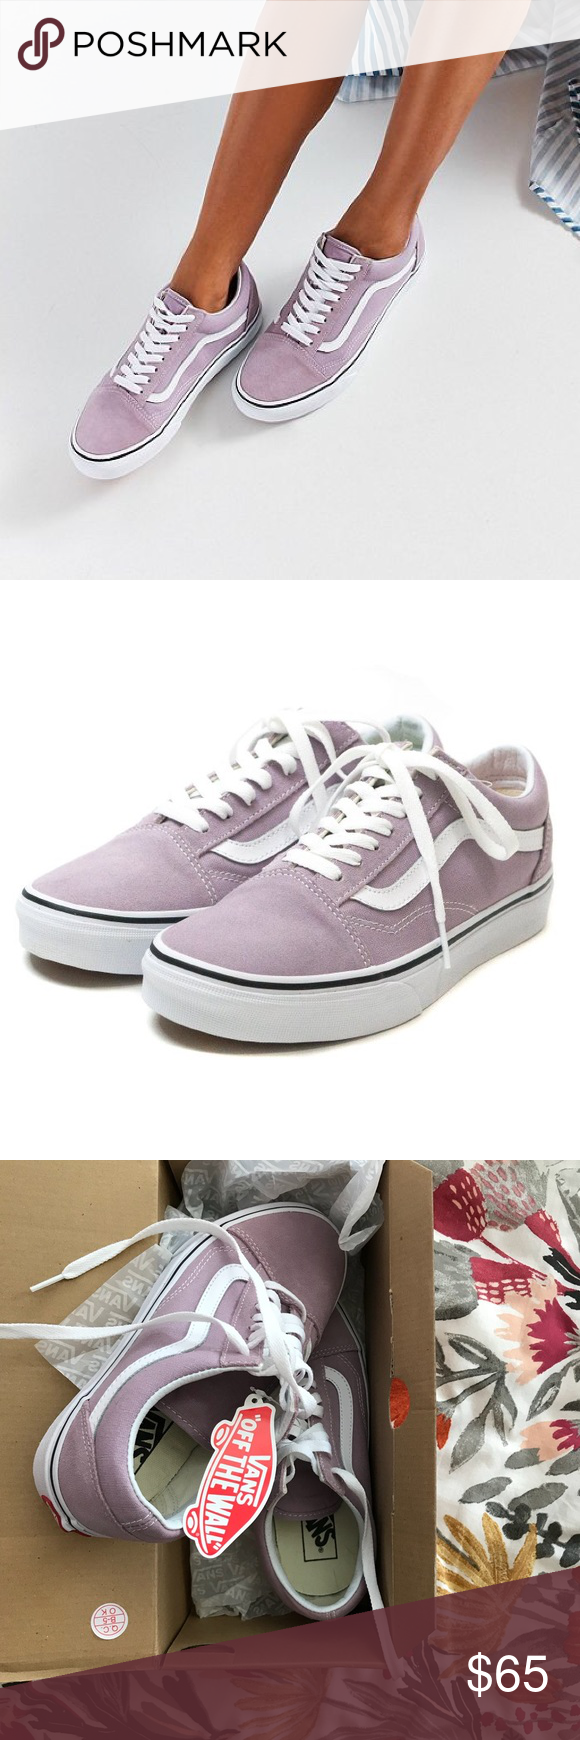 0b6b5a4e05 Vans Old Skool sneakers in Sea Fog (sz 8) Vans Old Skool lace-up sneakers  in a pretty lilac light purple color. The uppers are a mix of suede and  canvas.